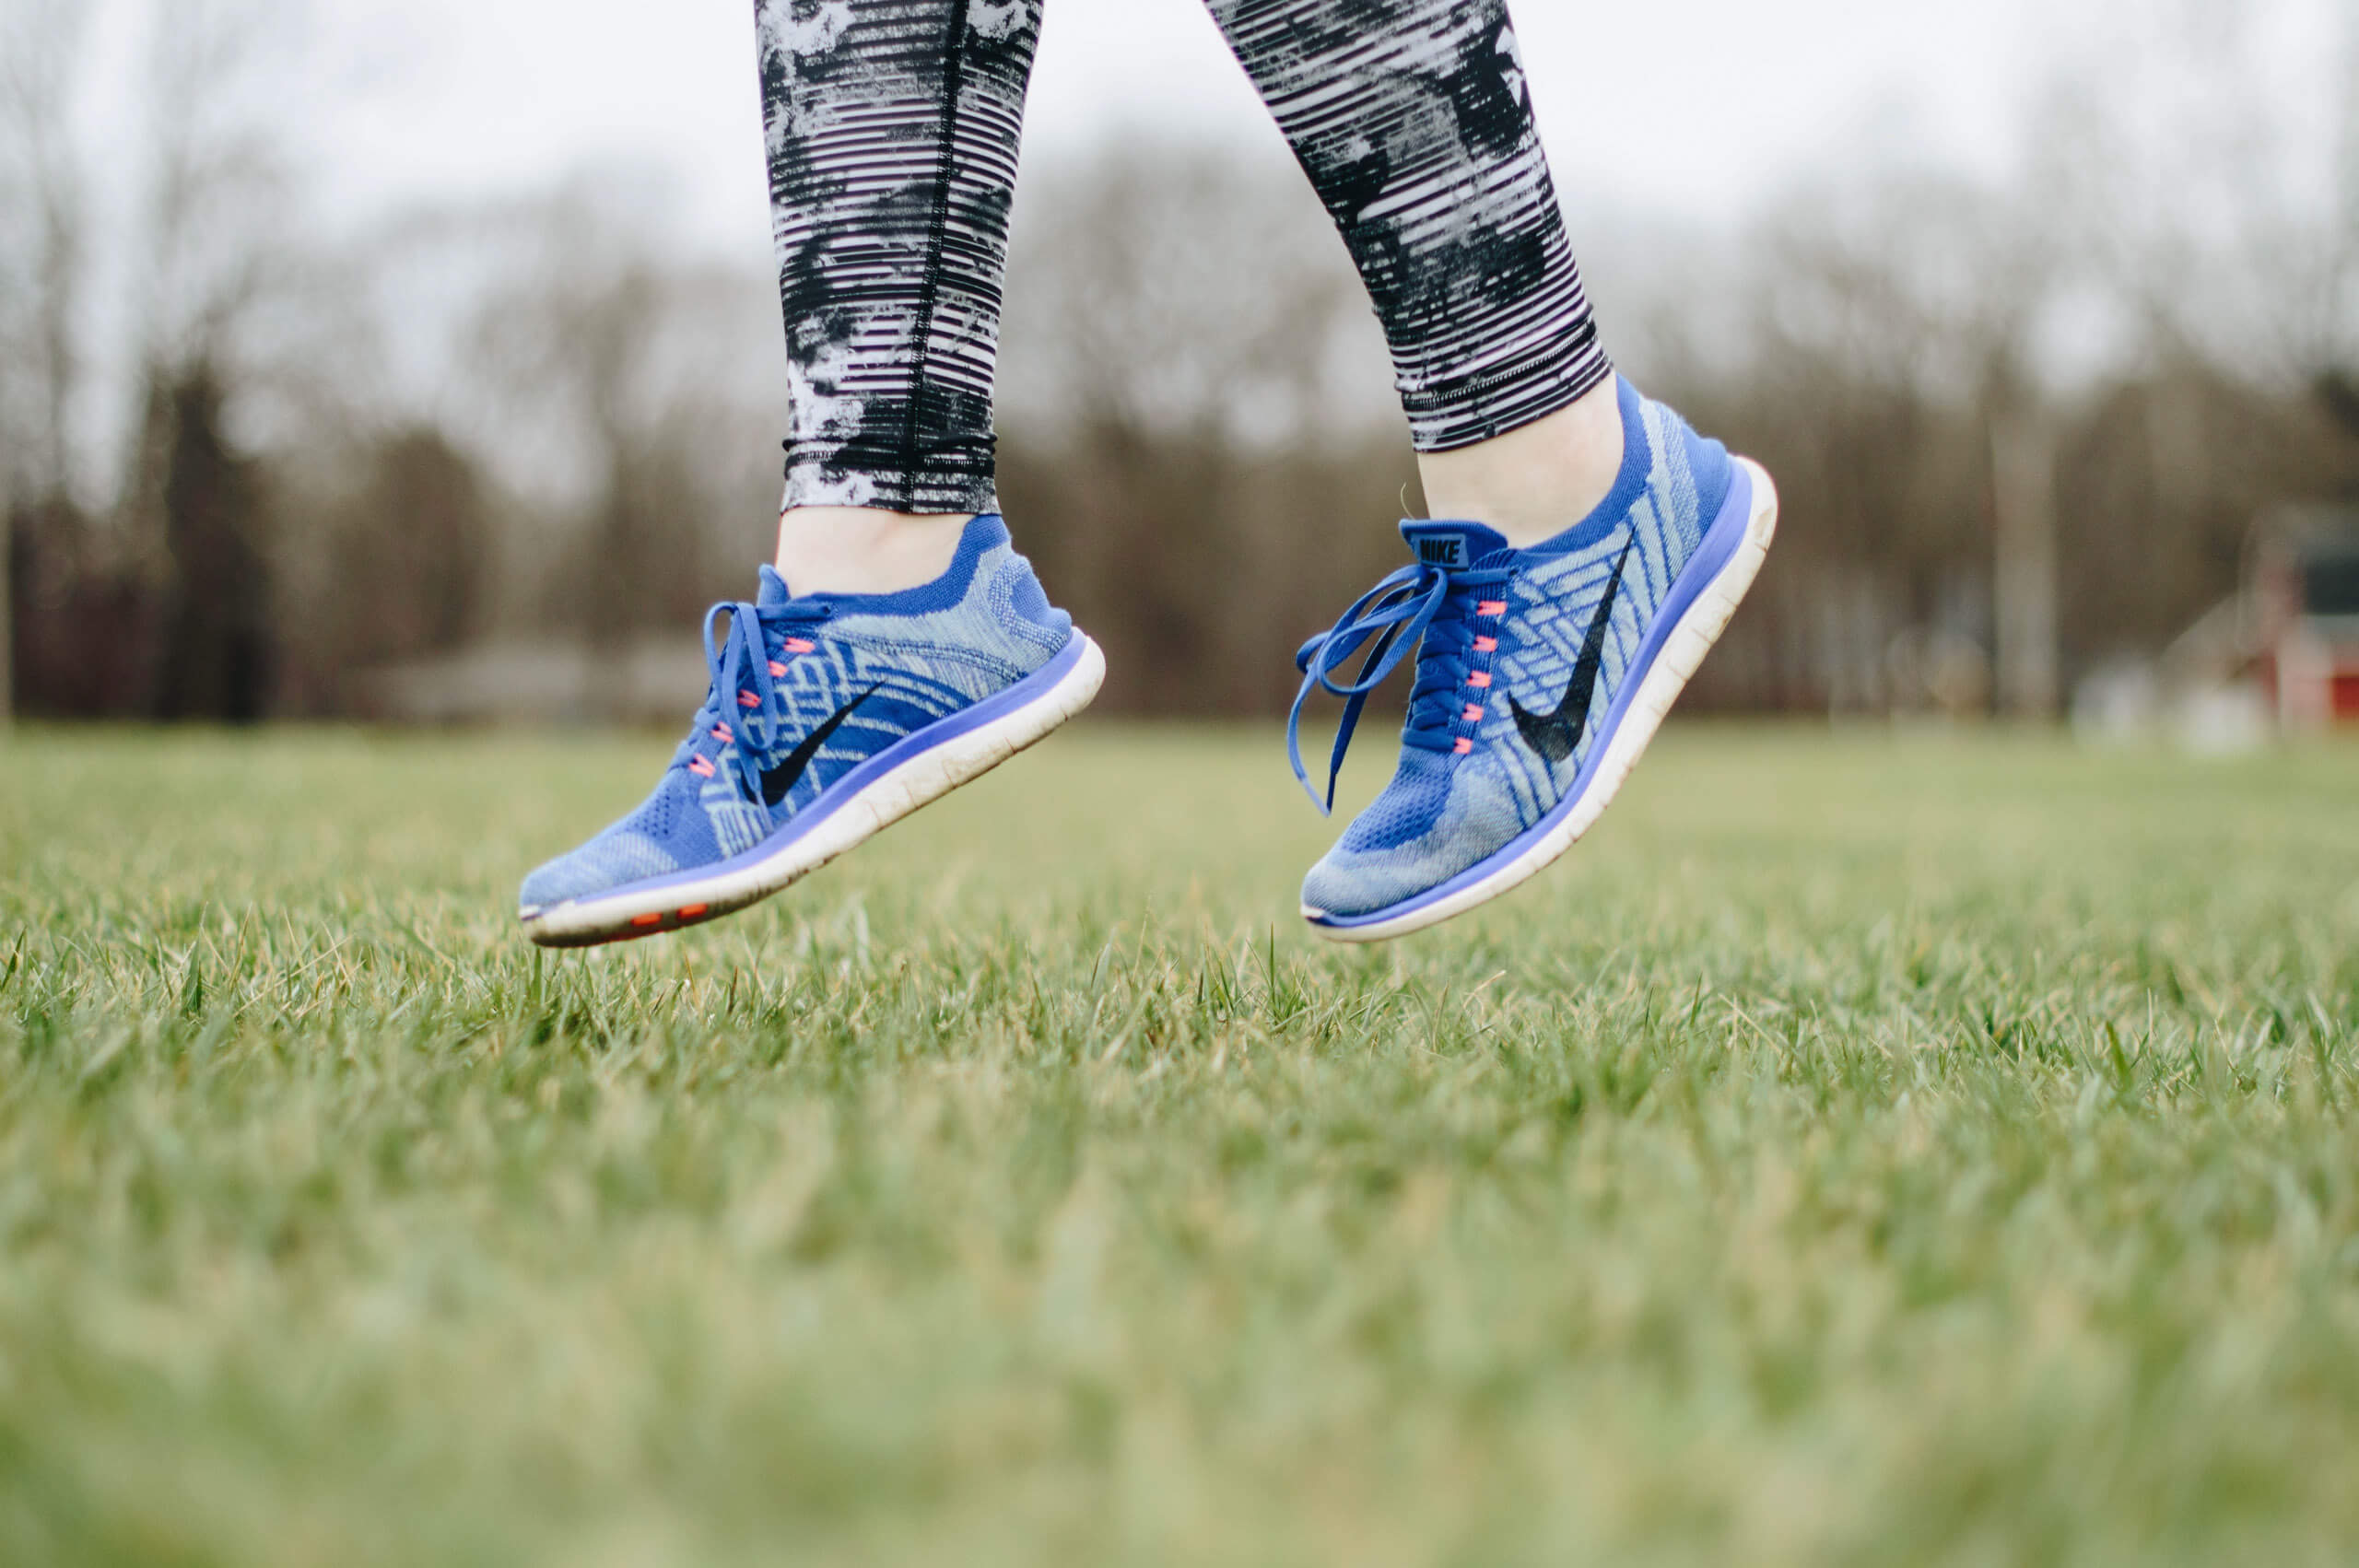 Nike shoes jumping in green field